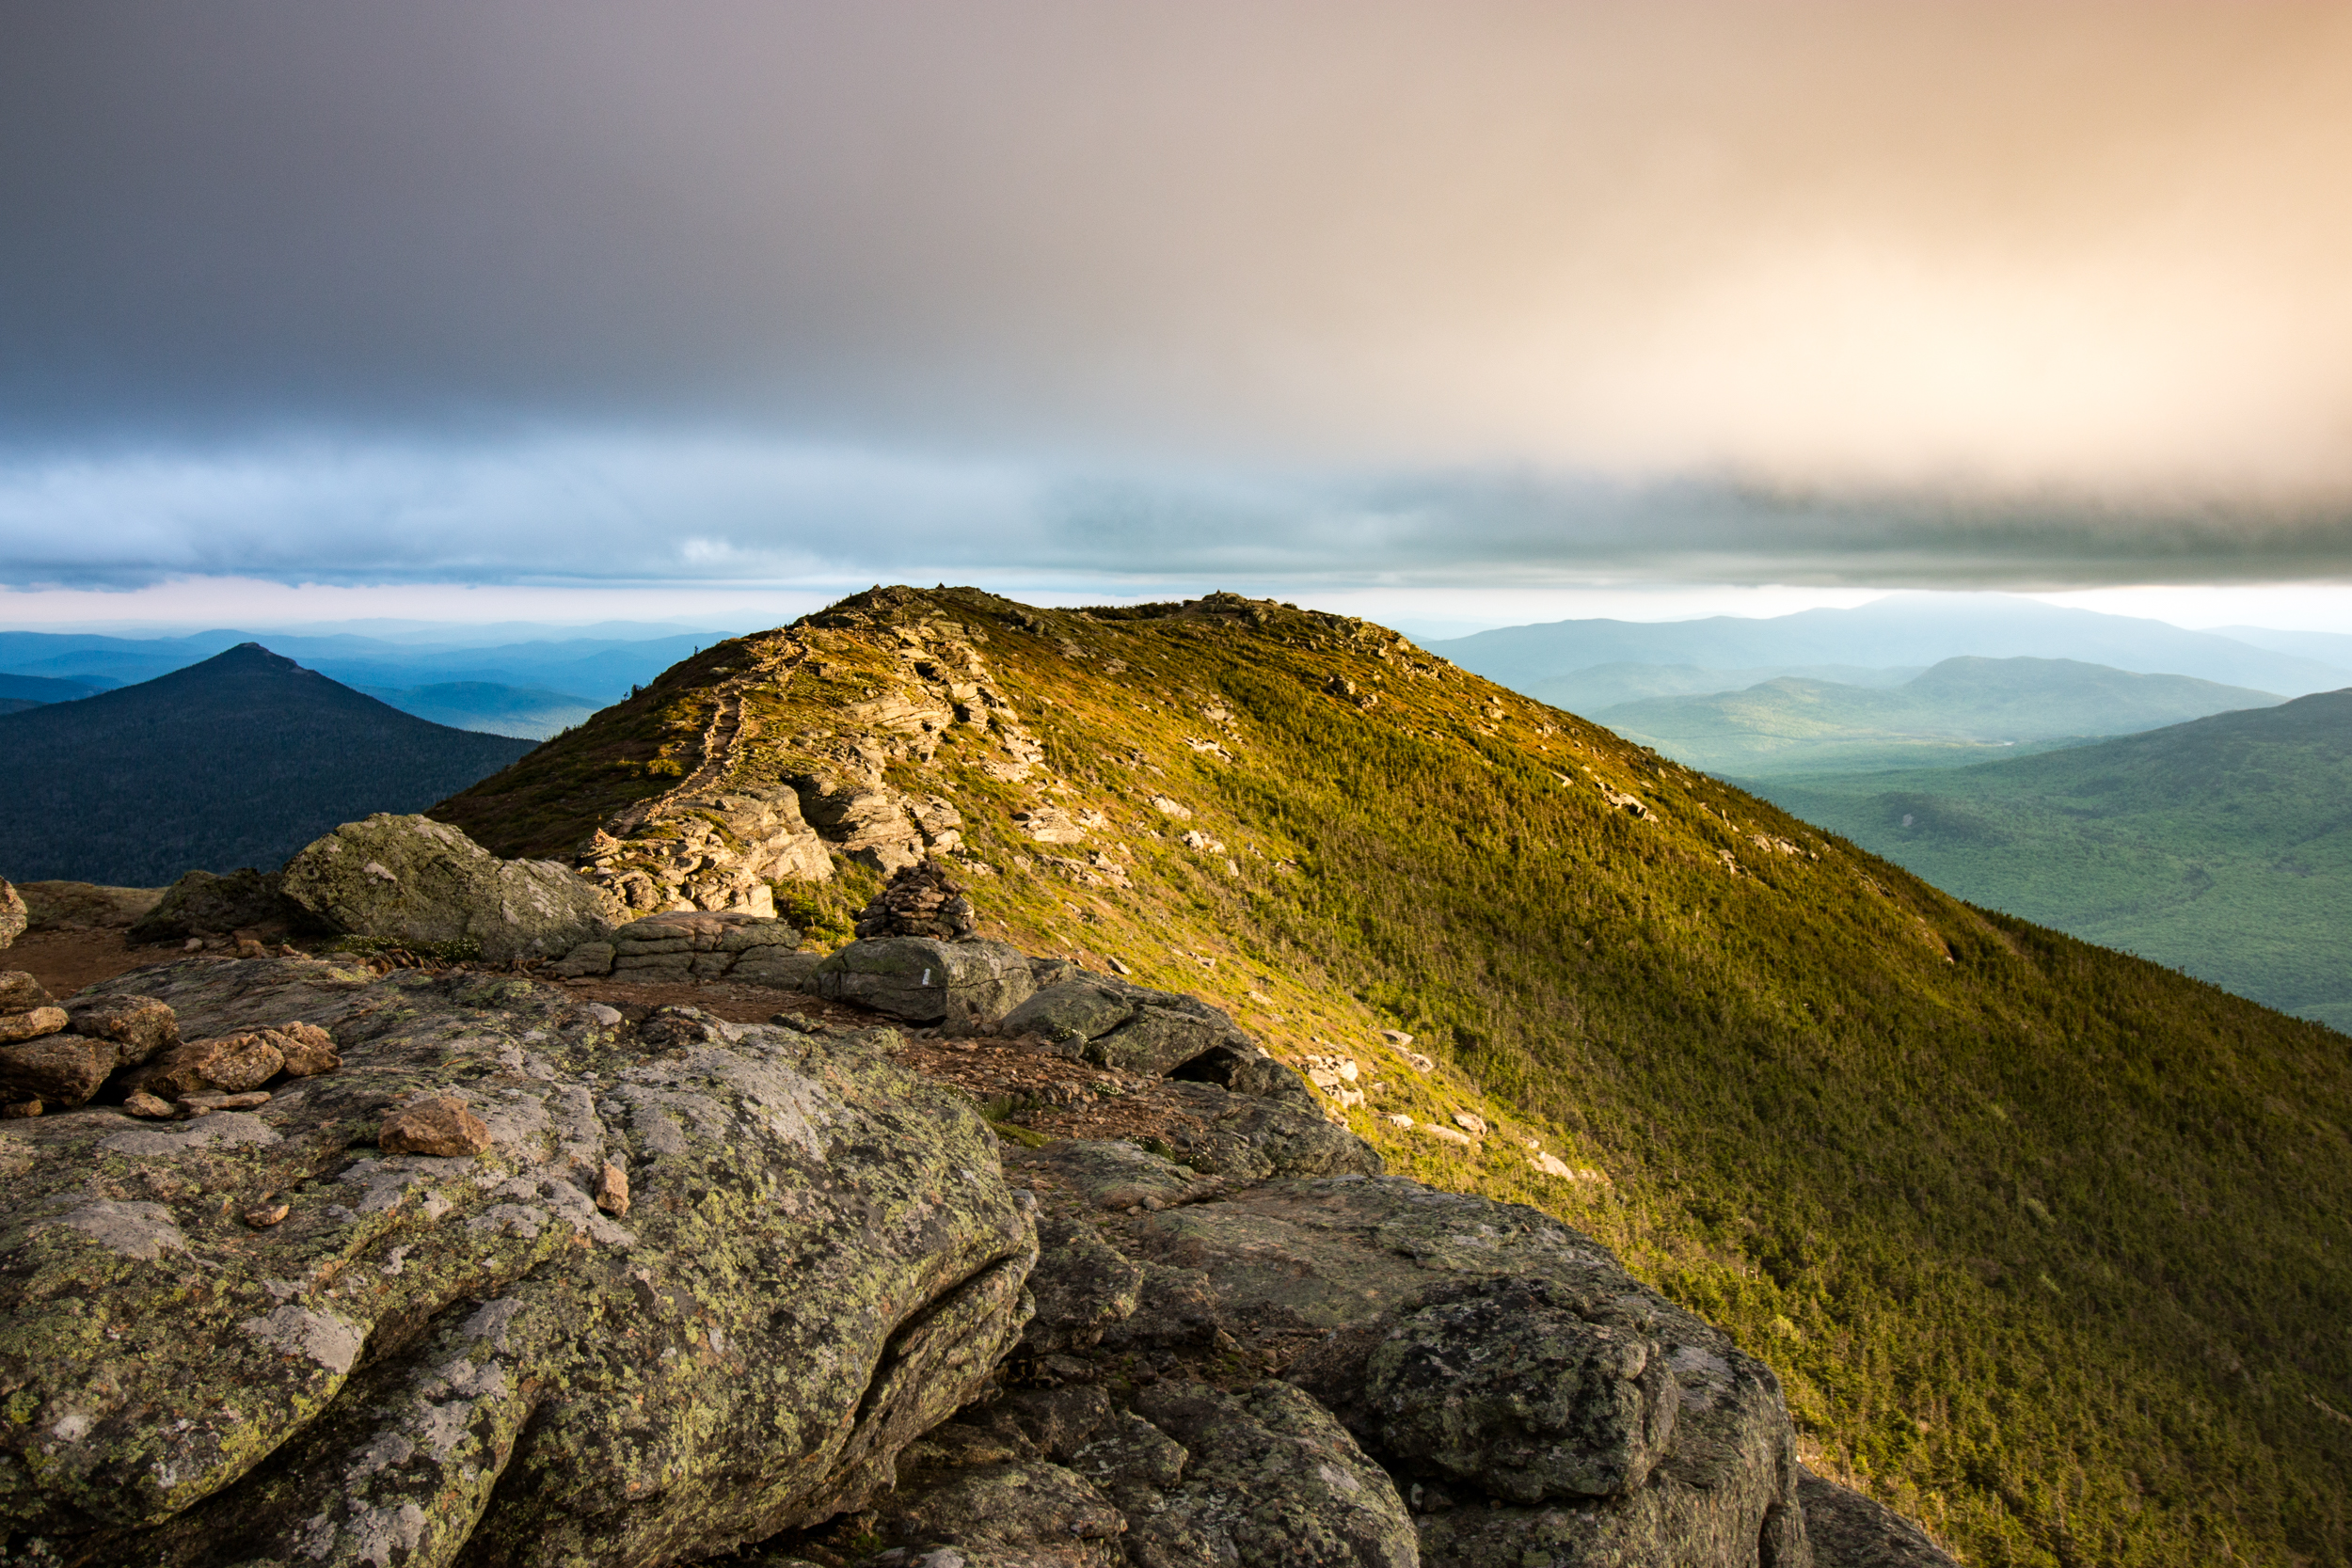 Franconia Ridge catching the golden hour.